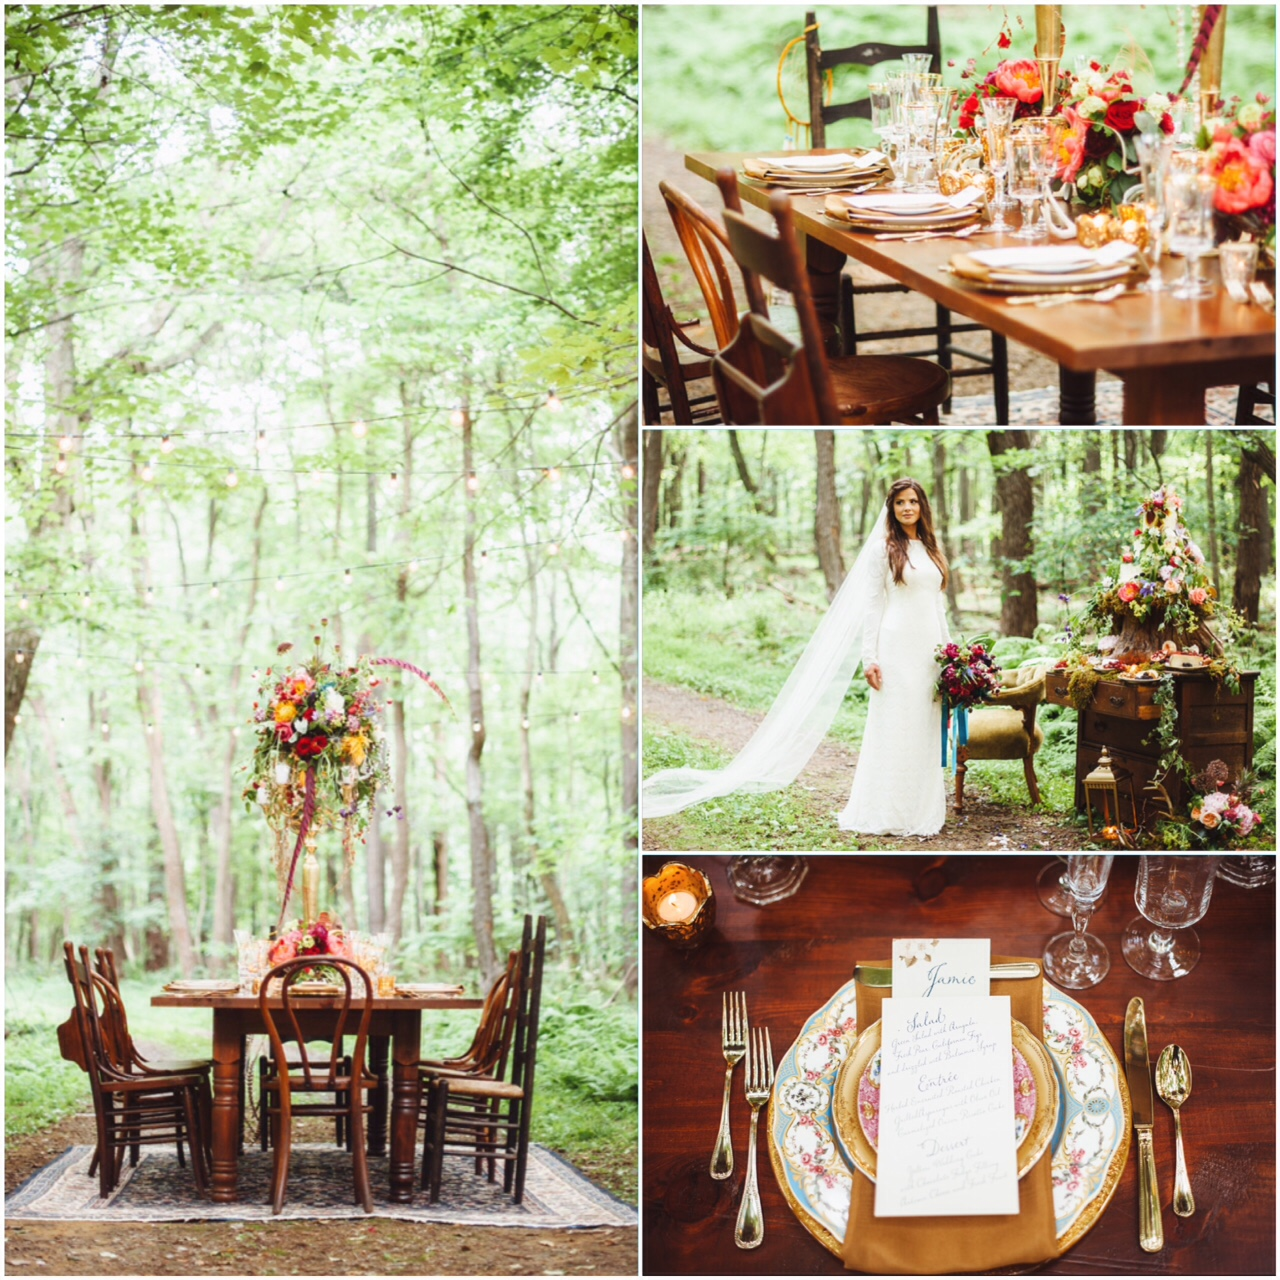 Wedding Ideas And Inspirations: Boho Wedding: Ideas For Nature-Inspired Celebrations